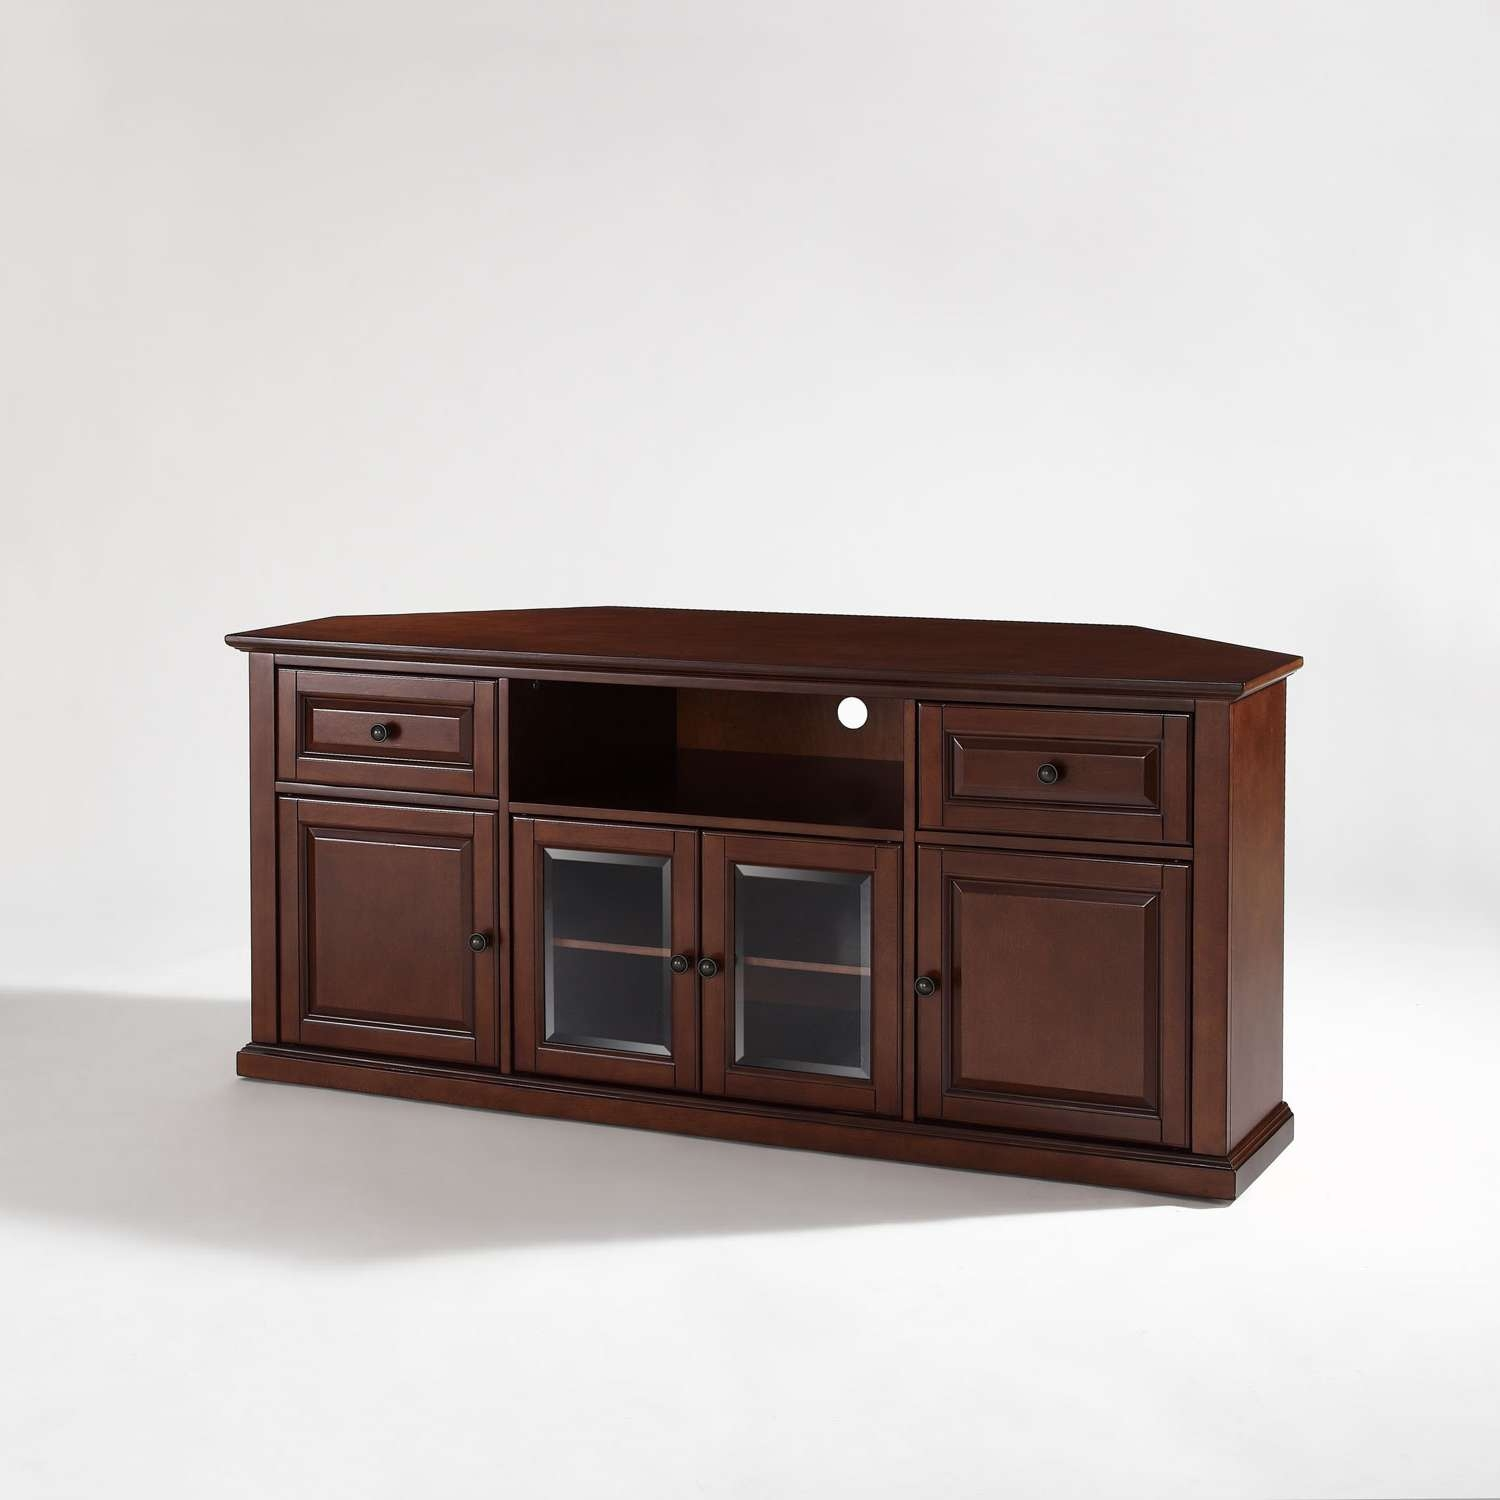 Tv Stands & Cabinets On Sale   Bellacor Intended For Retro Corner Tv Stands (View 10 of 15)